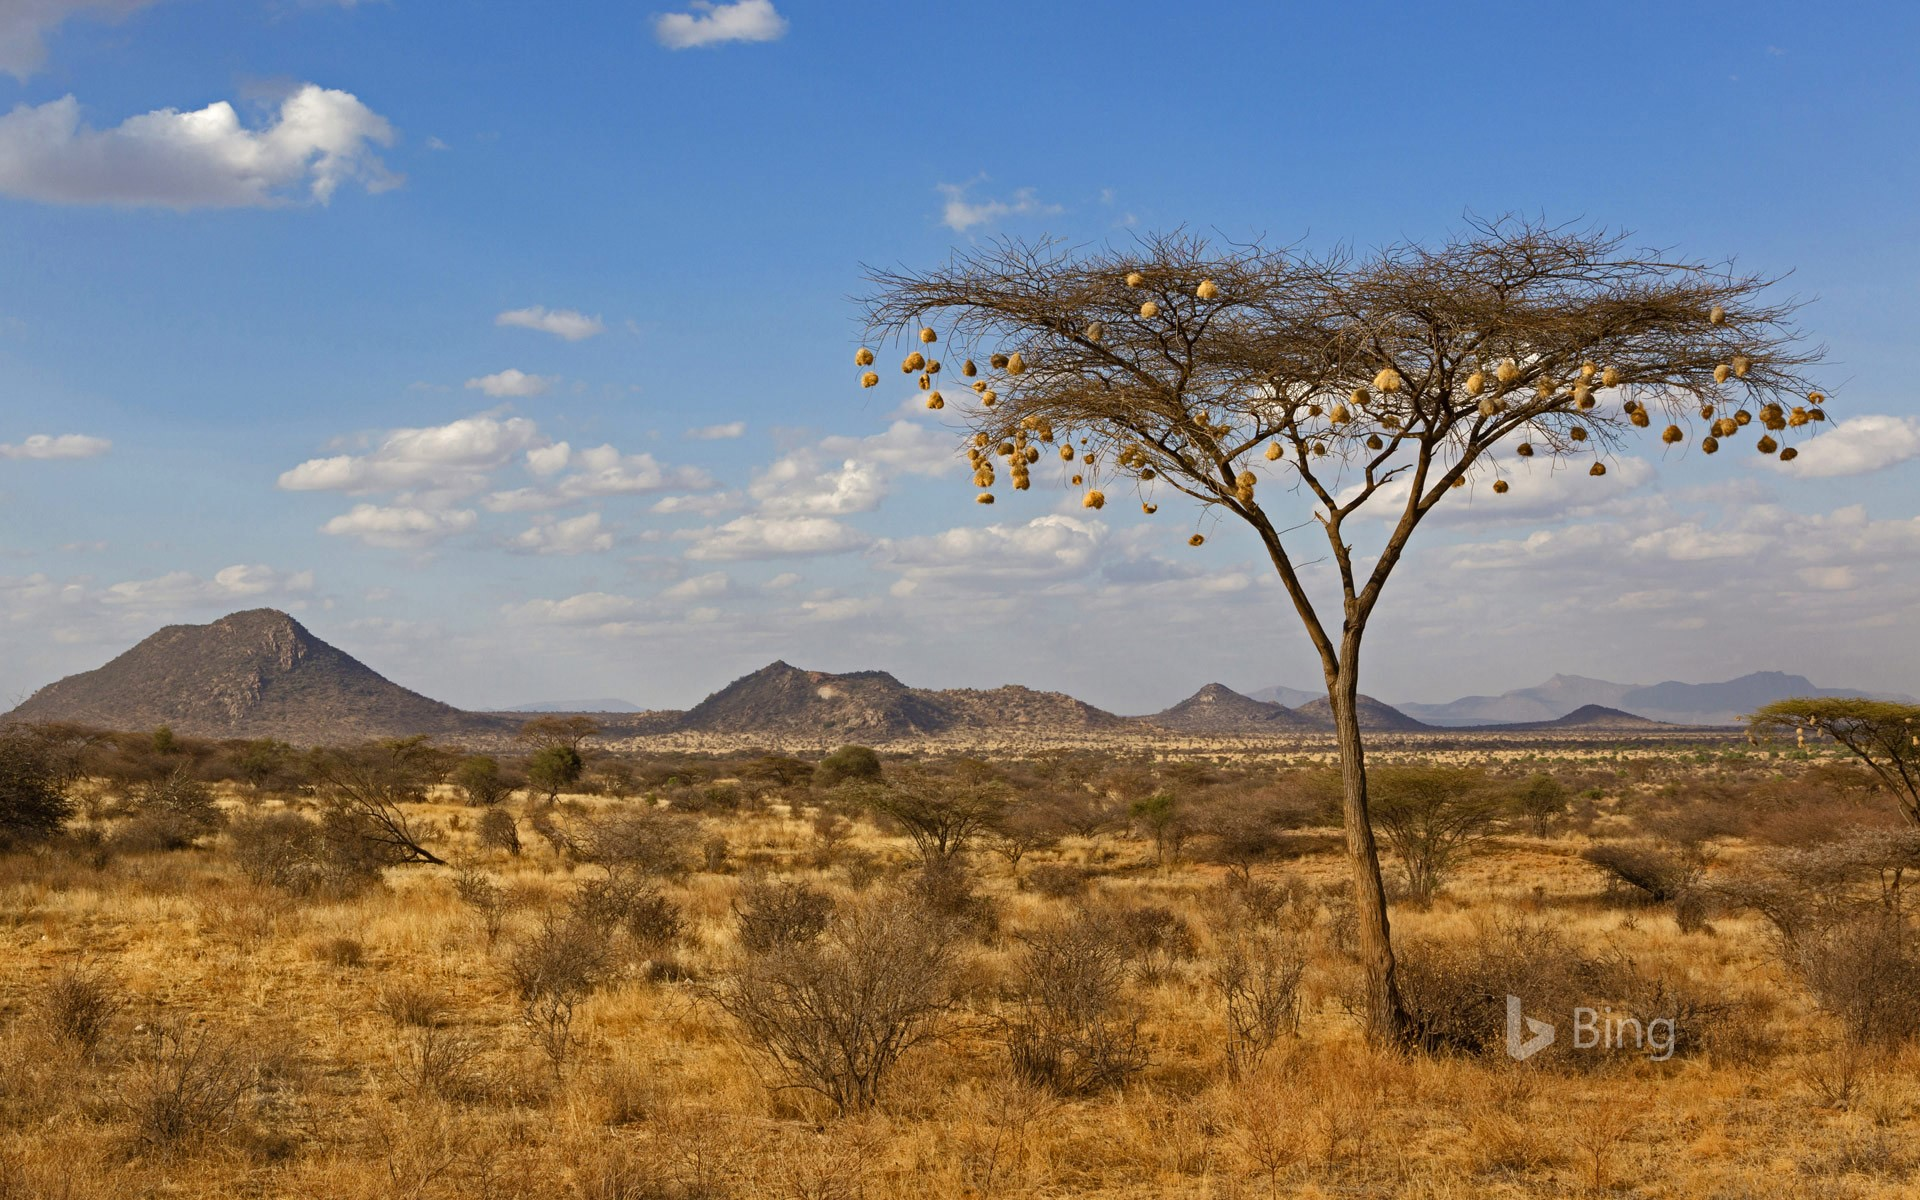 Weaverbird nests hanging from acacia tree in Samburu National Reserve, Kenya